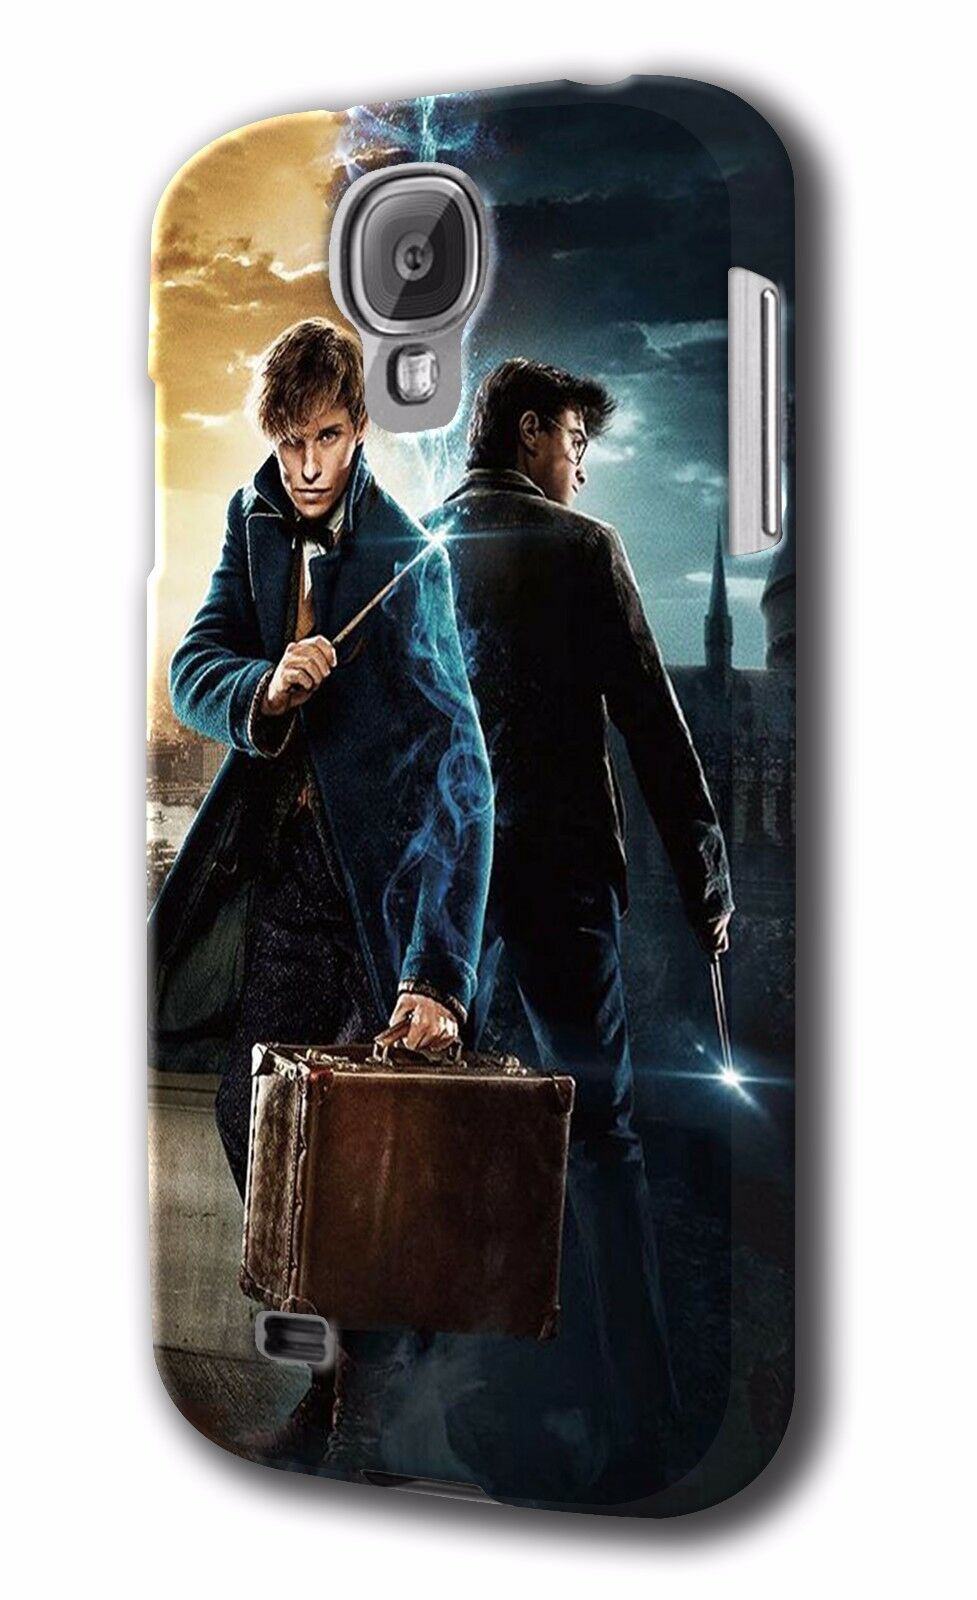 Fantastic Beasts Samsung Galaxy S4 5 6 7 Edge Note 3 4 5 Plus Case Cover 4